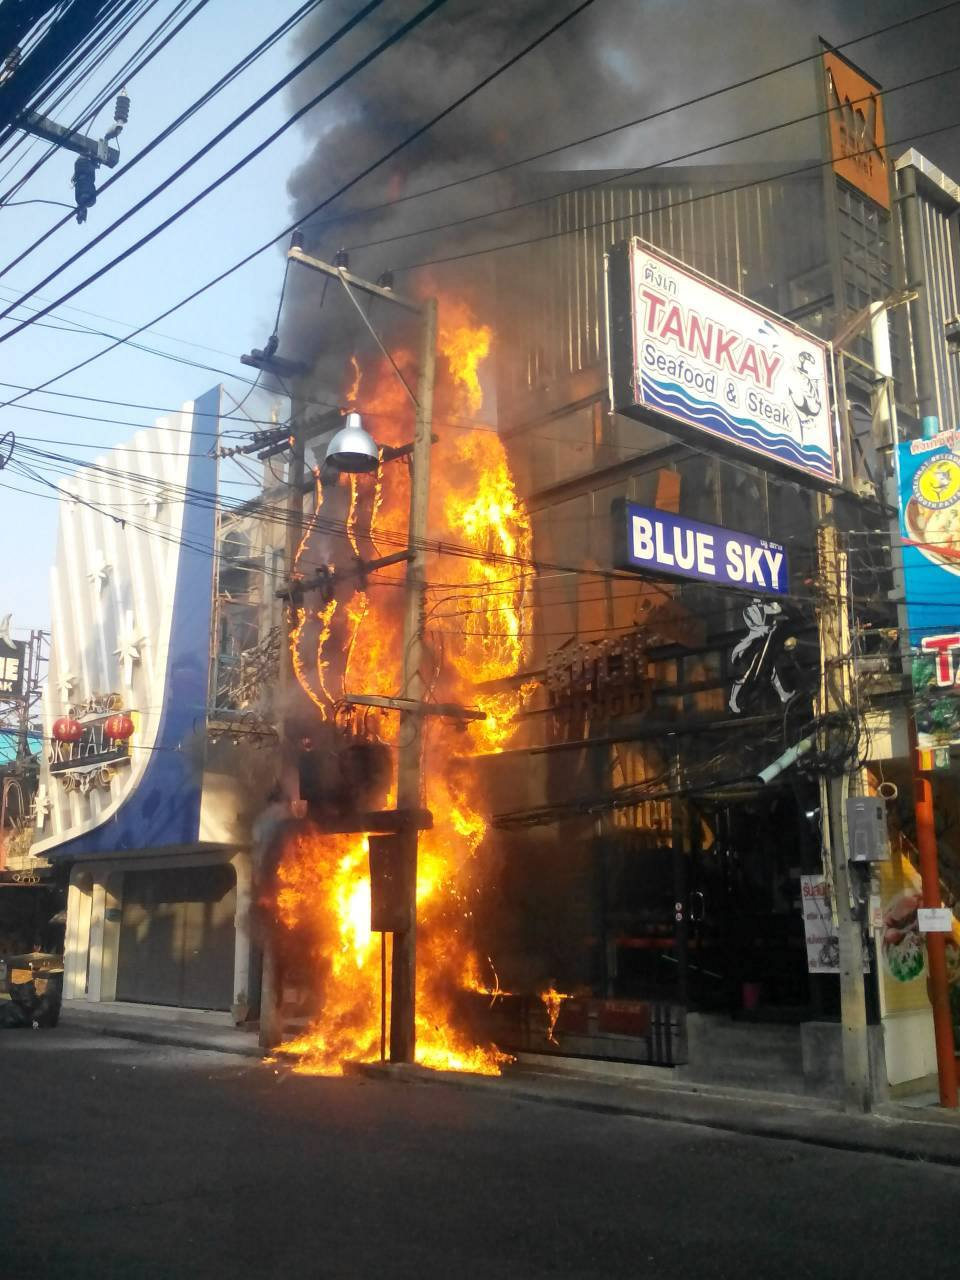 A squirrel sparked an explosion and fire that destroyed the Blue Sky Rock Street bar on Walking Street.